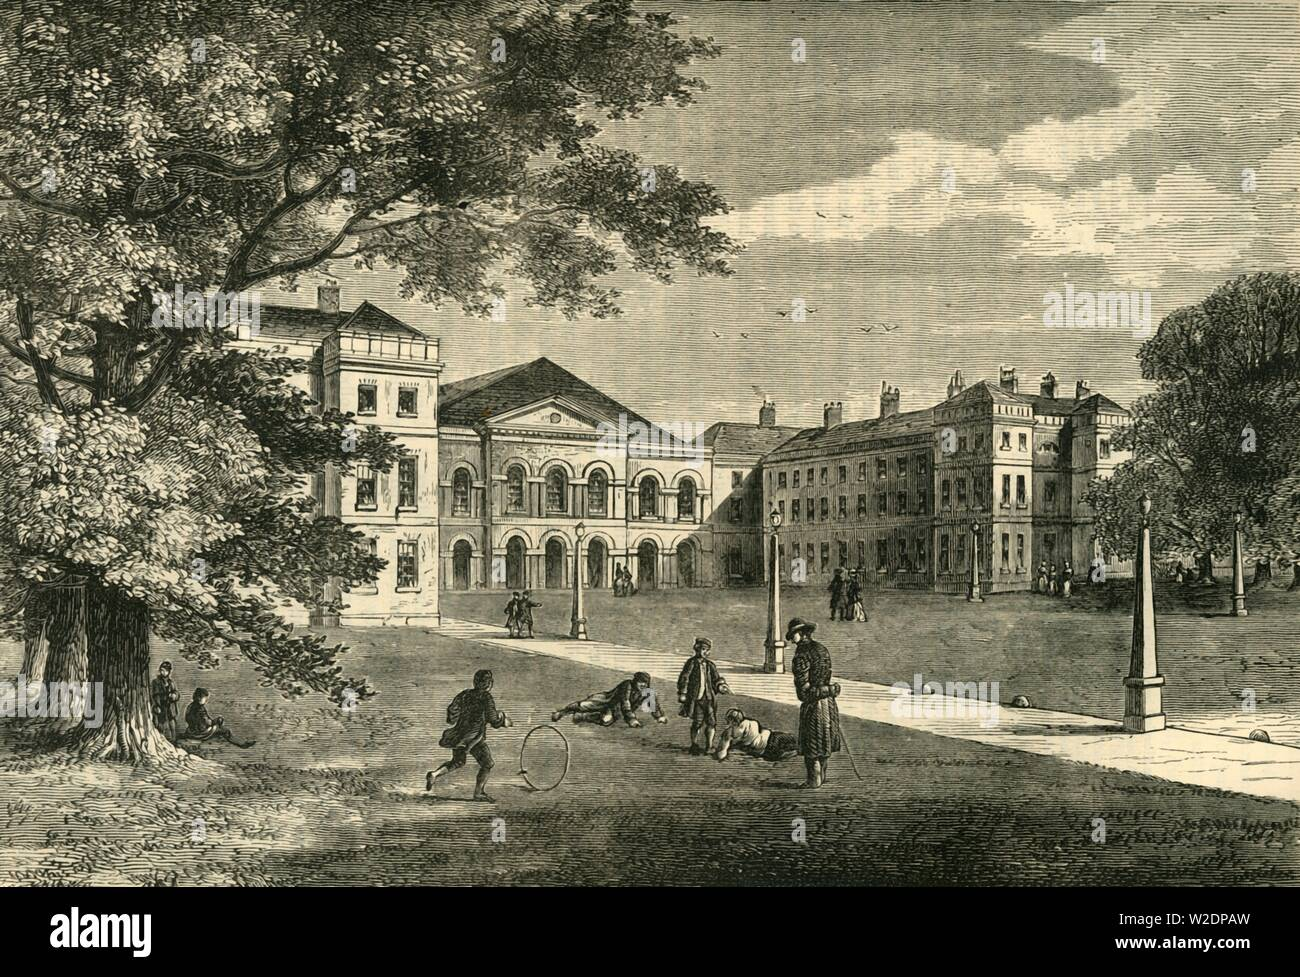 """'Front of the Foundling Hospital', c1876. Founded in 1739 by Thomas Coram, the Foundling Hospital in Bloomsbury, was a children's home for the """"education and maintenance of exposed and deserted young children' and a fashionable charity of the time.  From """"Old and New London: A Narrative of Its History, Its People, and Its Places. The Western and Northern Studies"""", by Edward Walford. [Cassell, Petter, Galpin & Co., London, Paris & New York] - Stock Image"""